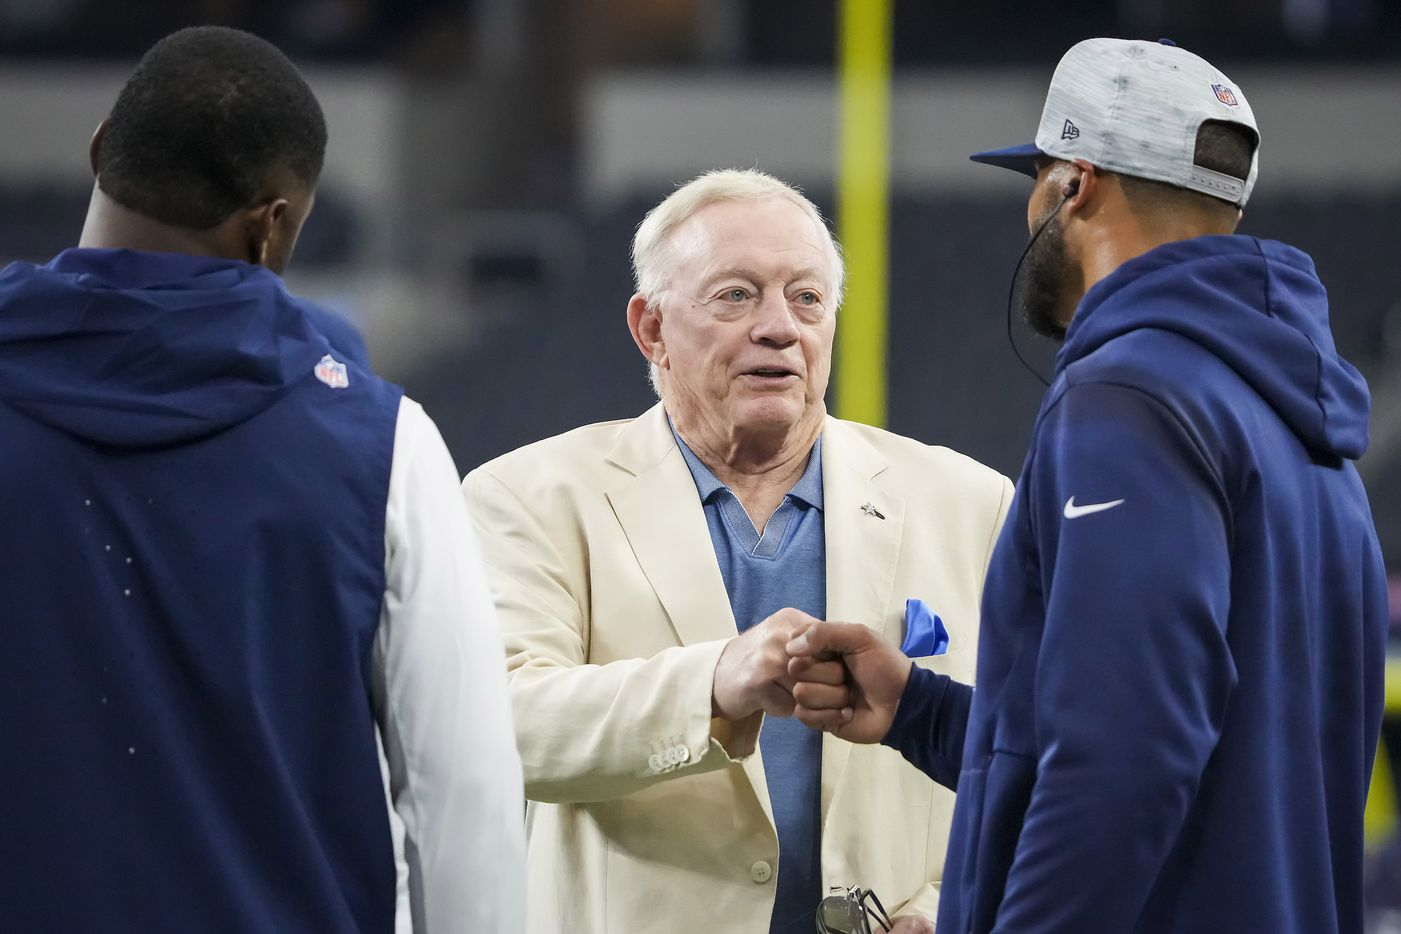 Dallas Cowboys owner and general manager Jerry Jones fist bumps quarterback Dak Prescott as he chats with wide receiver Amari Cooper while players warm before a preseason NFL football game at AT&T Stadium on Sunday, Aug. 29, 2021, in Arlington. (Smiley N. Pool/The Dallas Morning News)